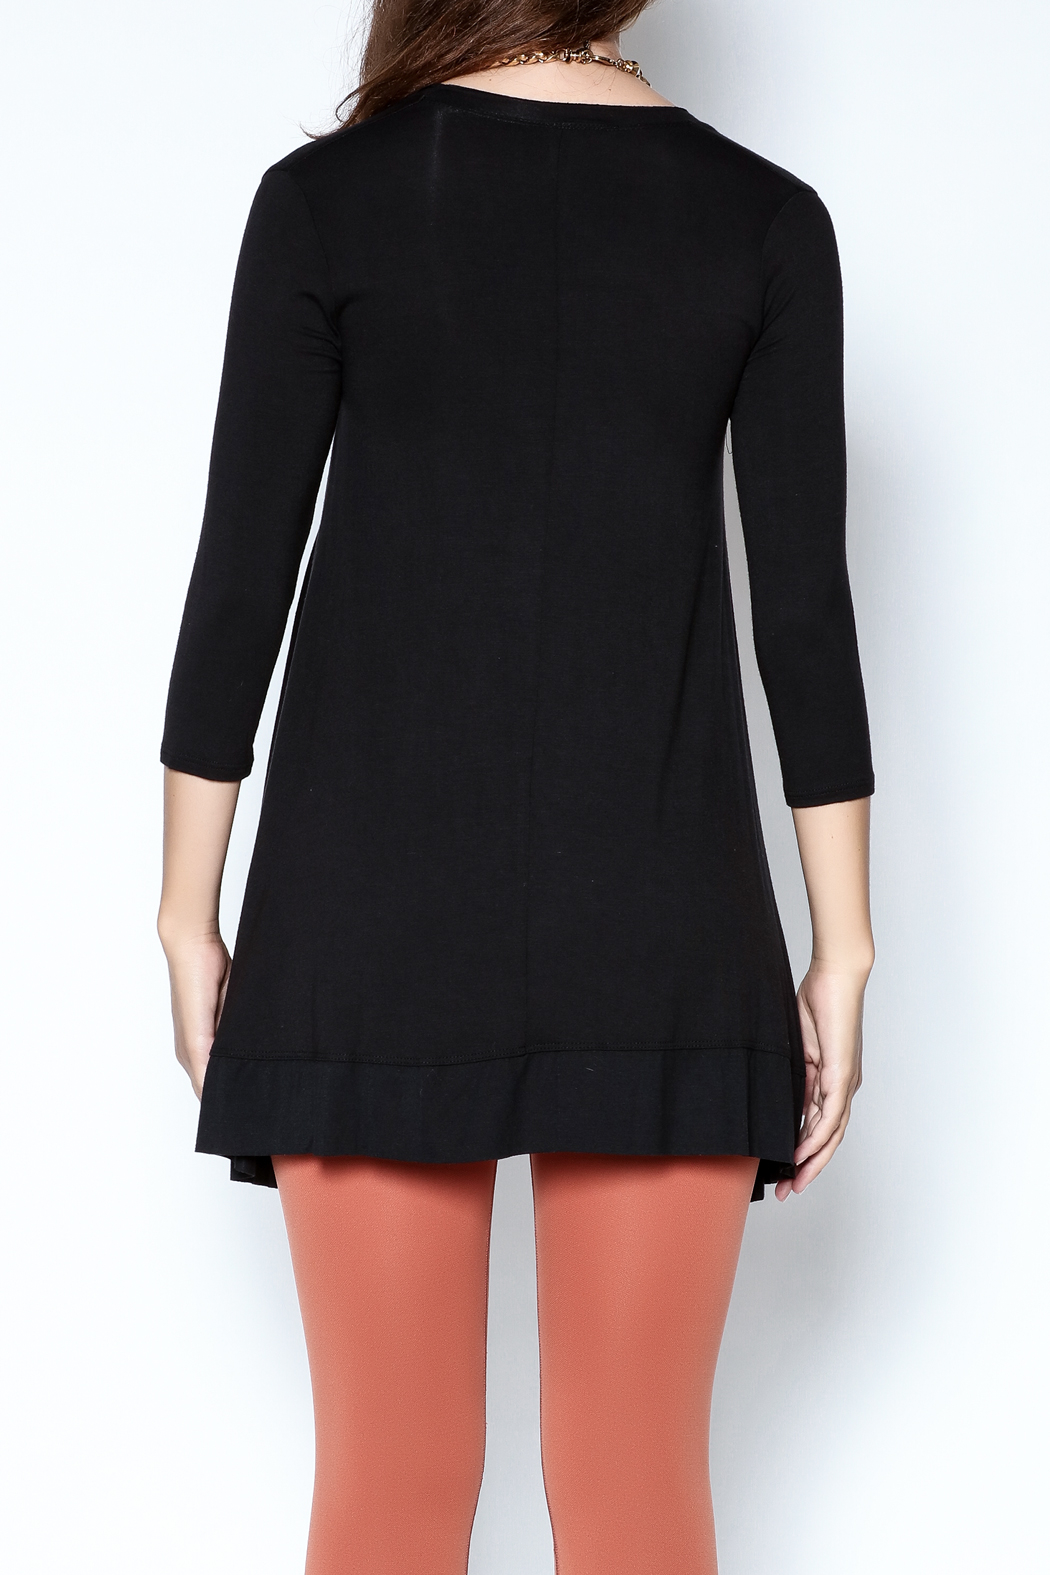 Steven Edwards Layering Tunic Top - Back Cropped Image